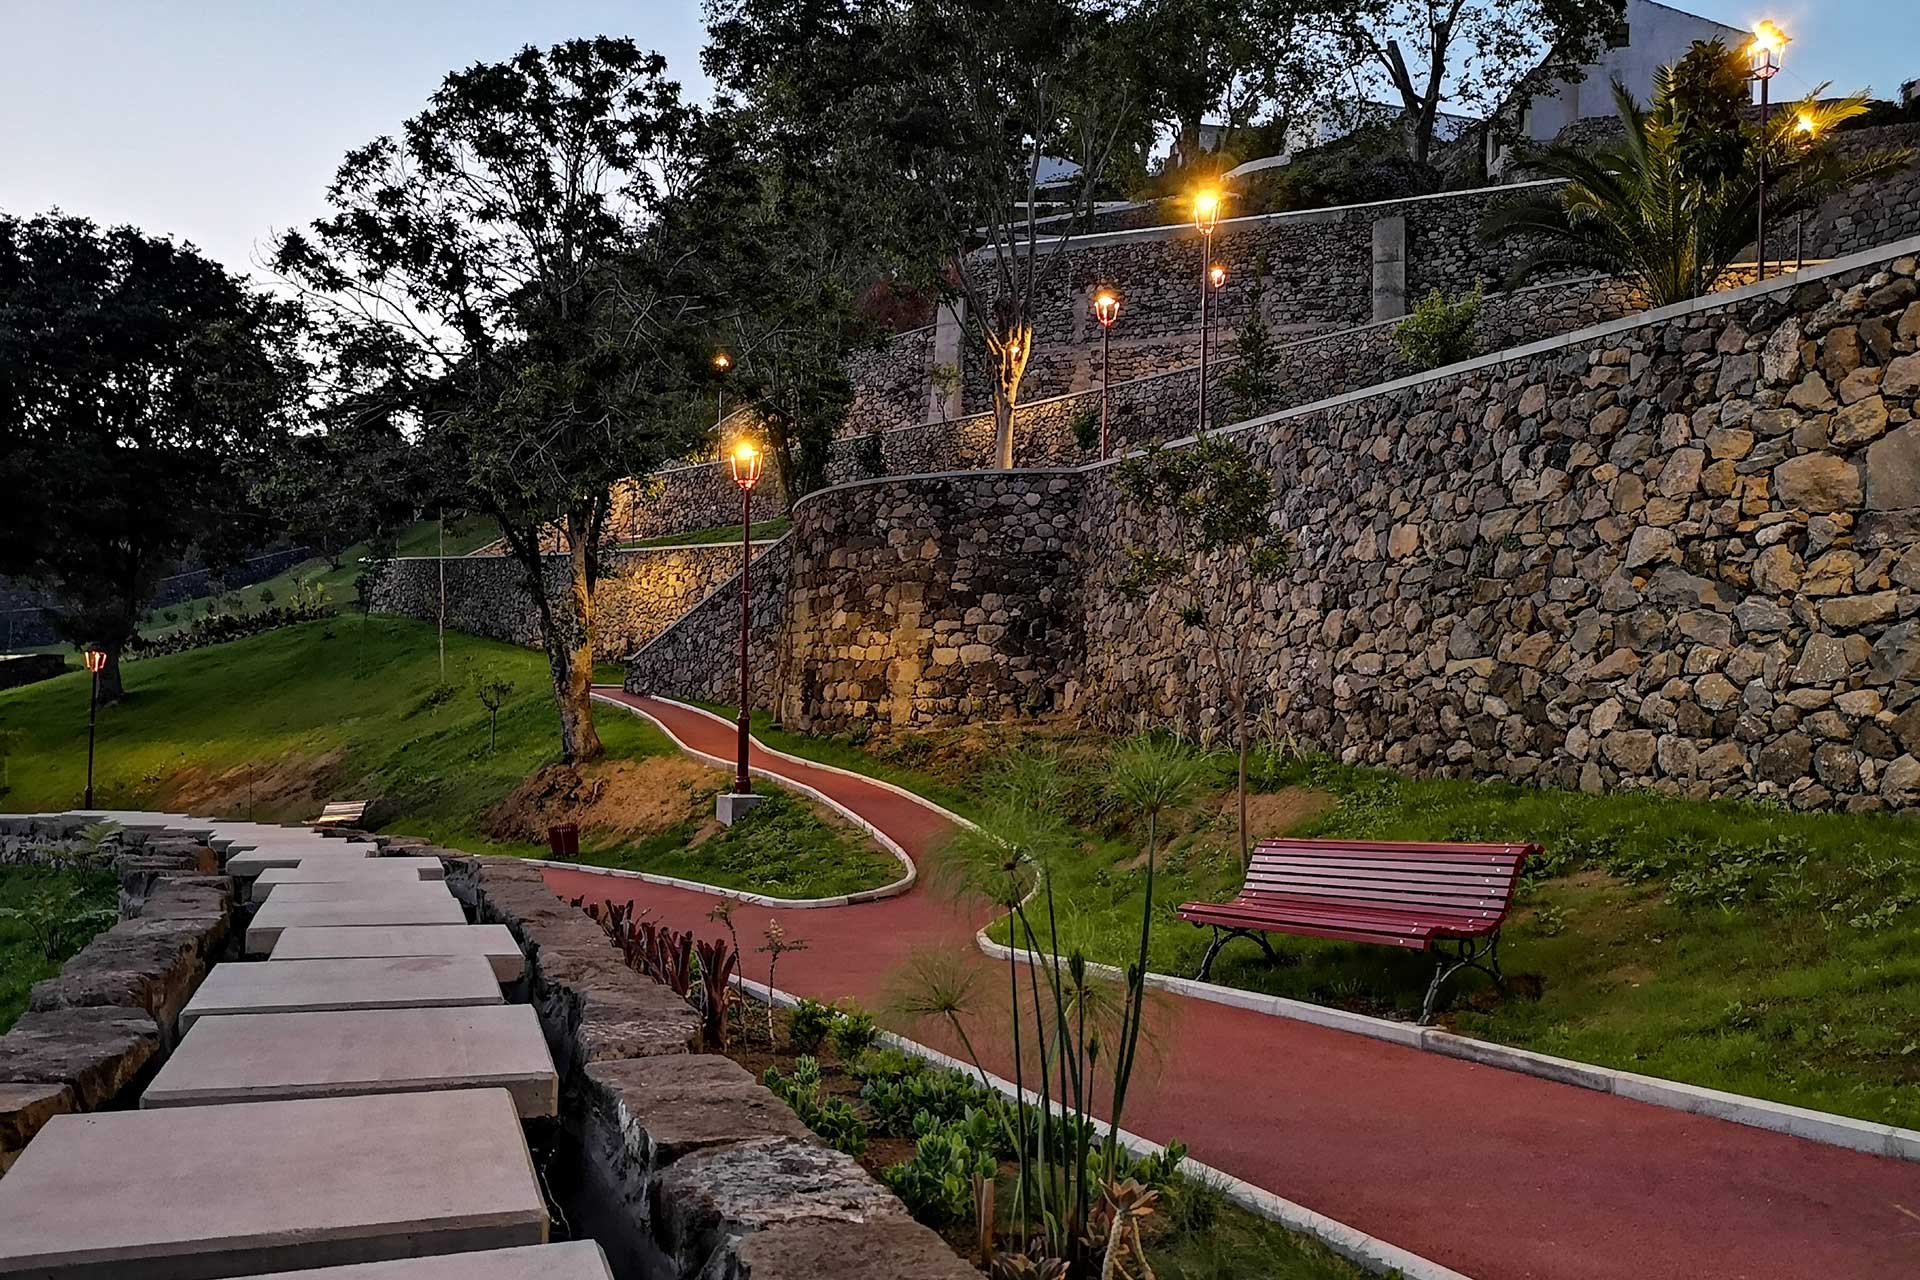 Urban lighting enhances both the natural beauty and cultural significance of Duque da Terceira Garden